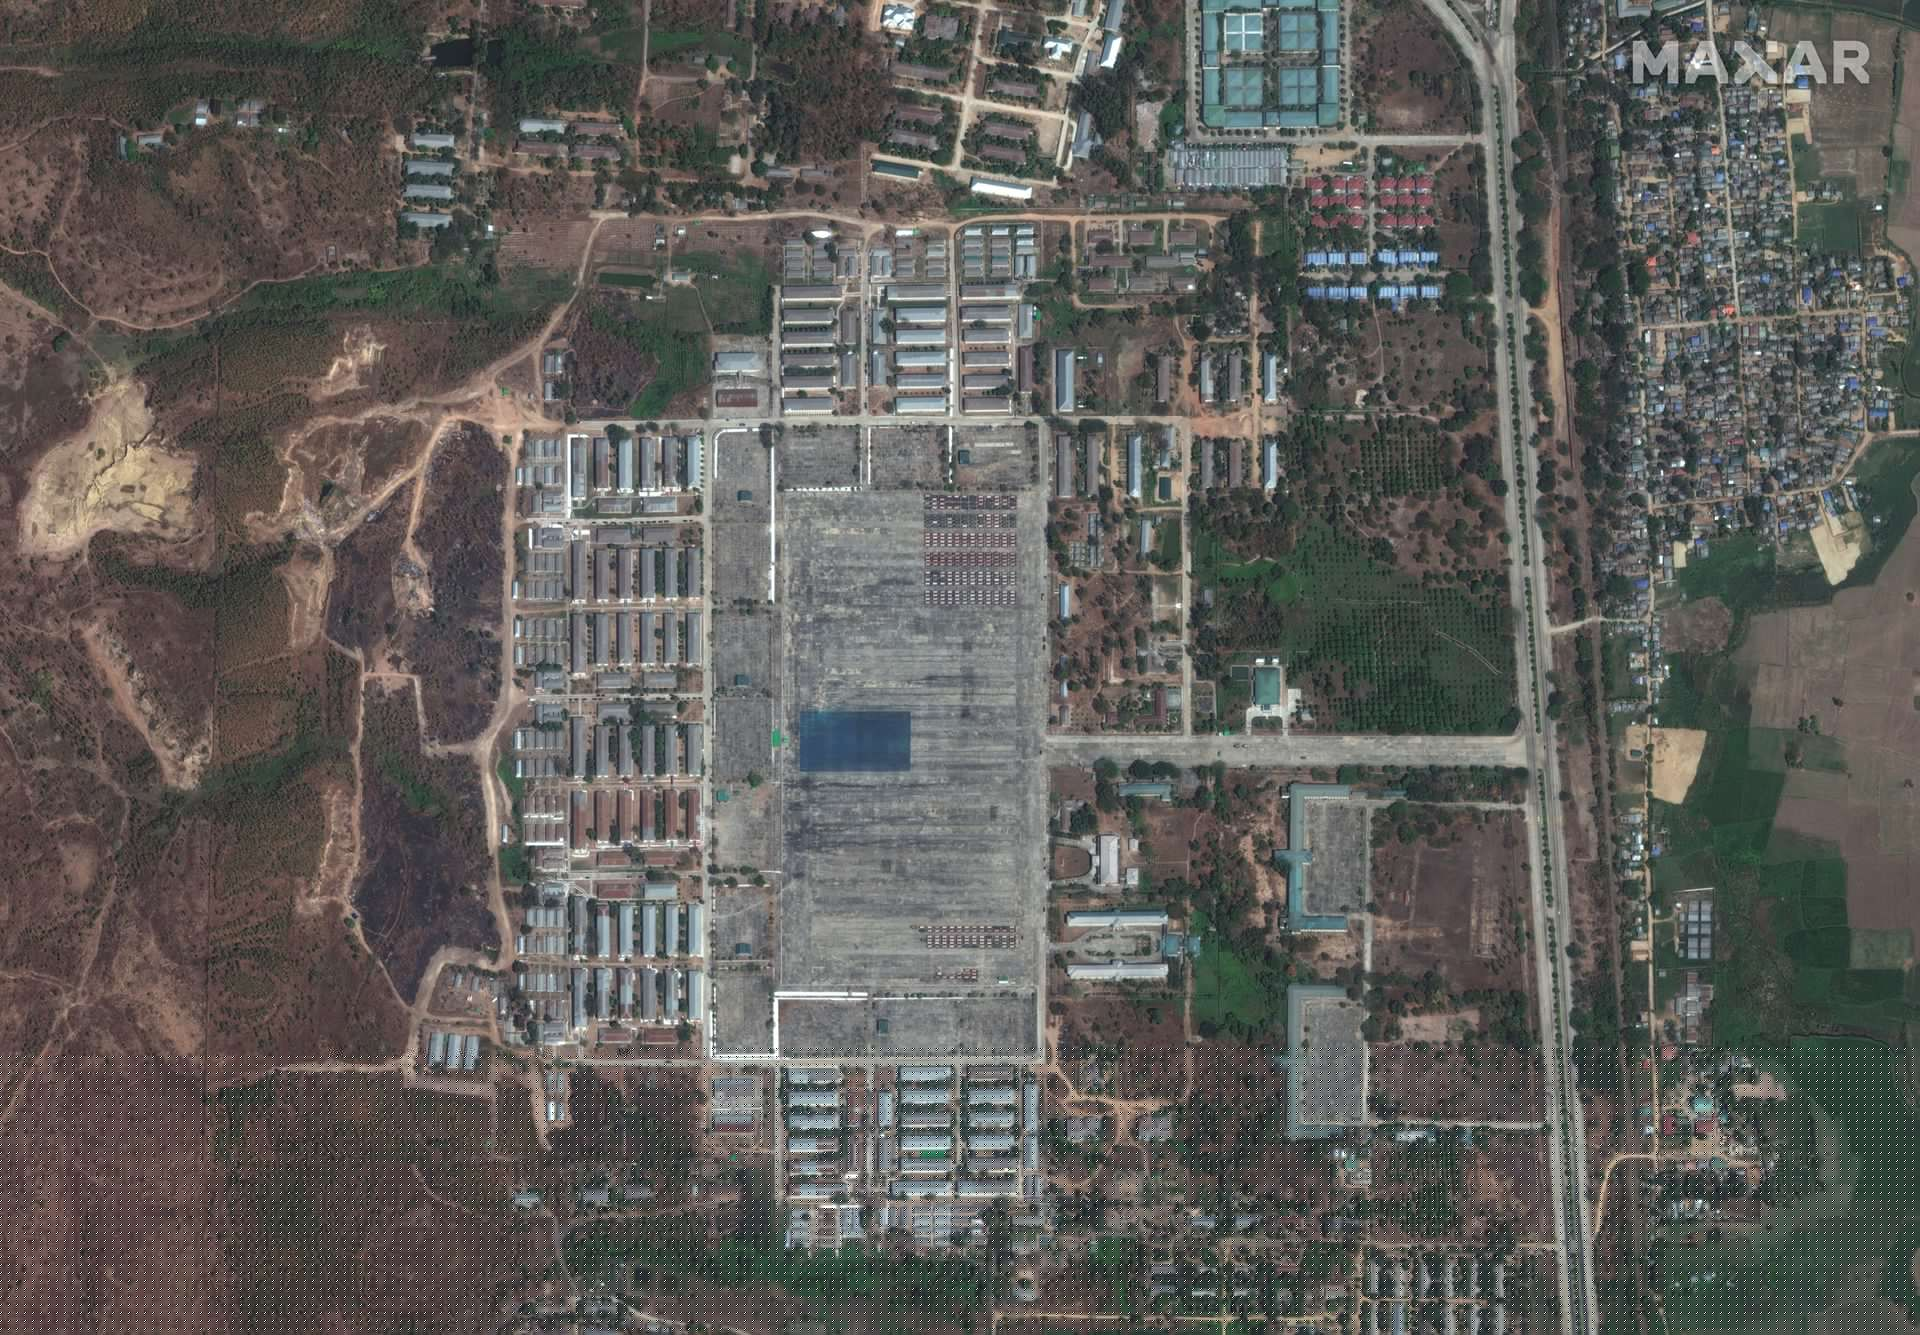 """Australia-Myanmar's """"Bloodest Day"""" Reuters Satellite Images Seeing Changes in Military Bases 